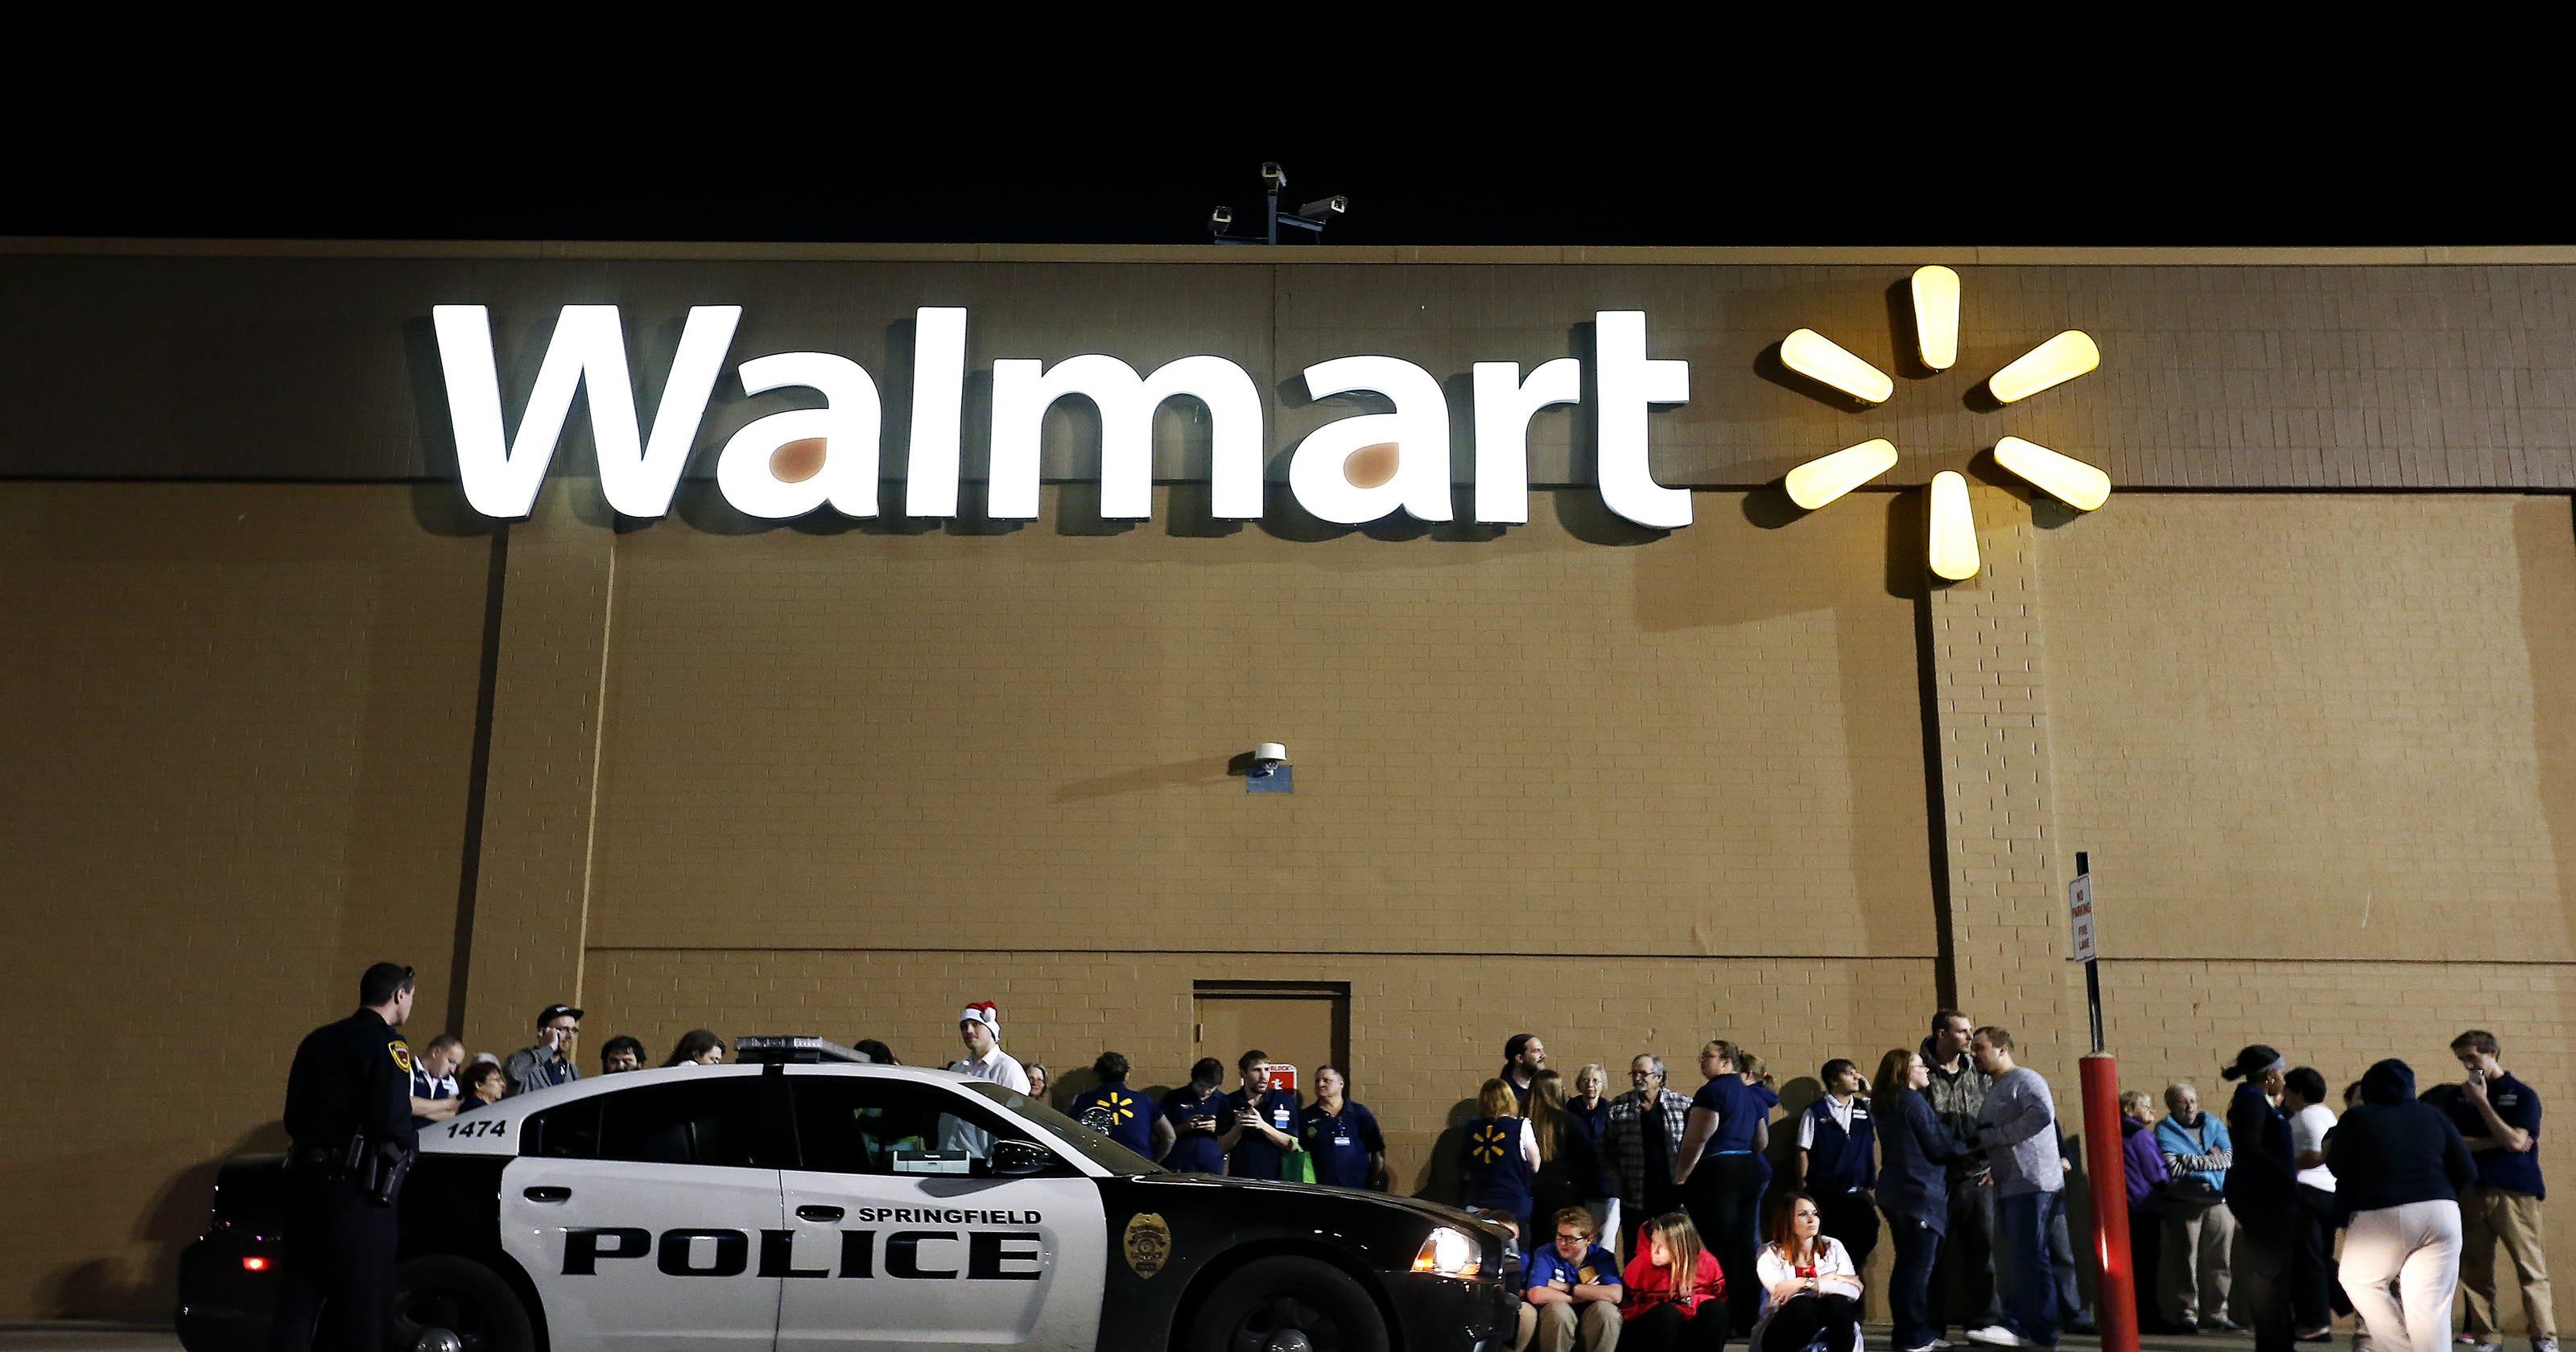 Walmarts are still hotspots of crime, but Springfield police